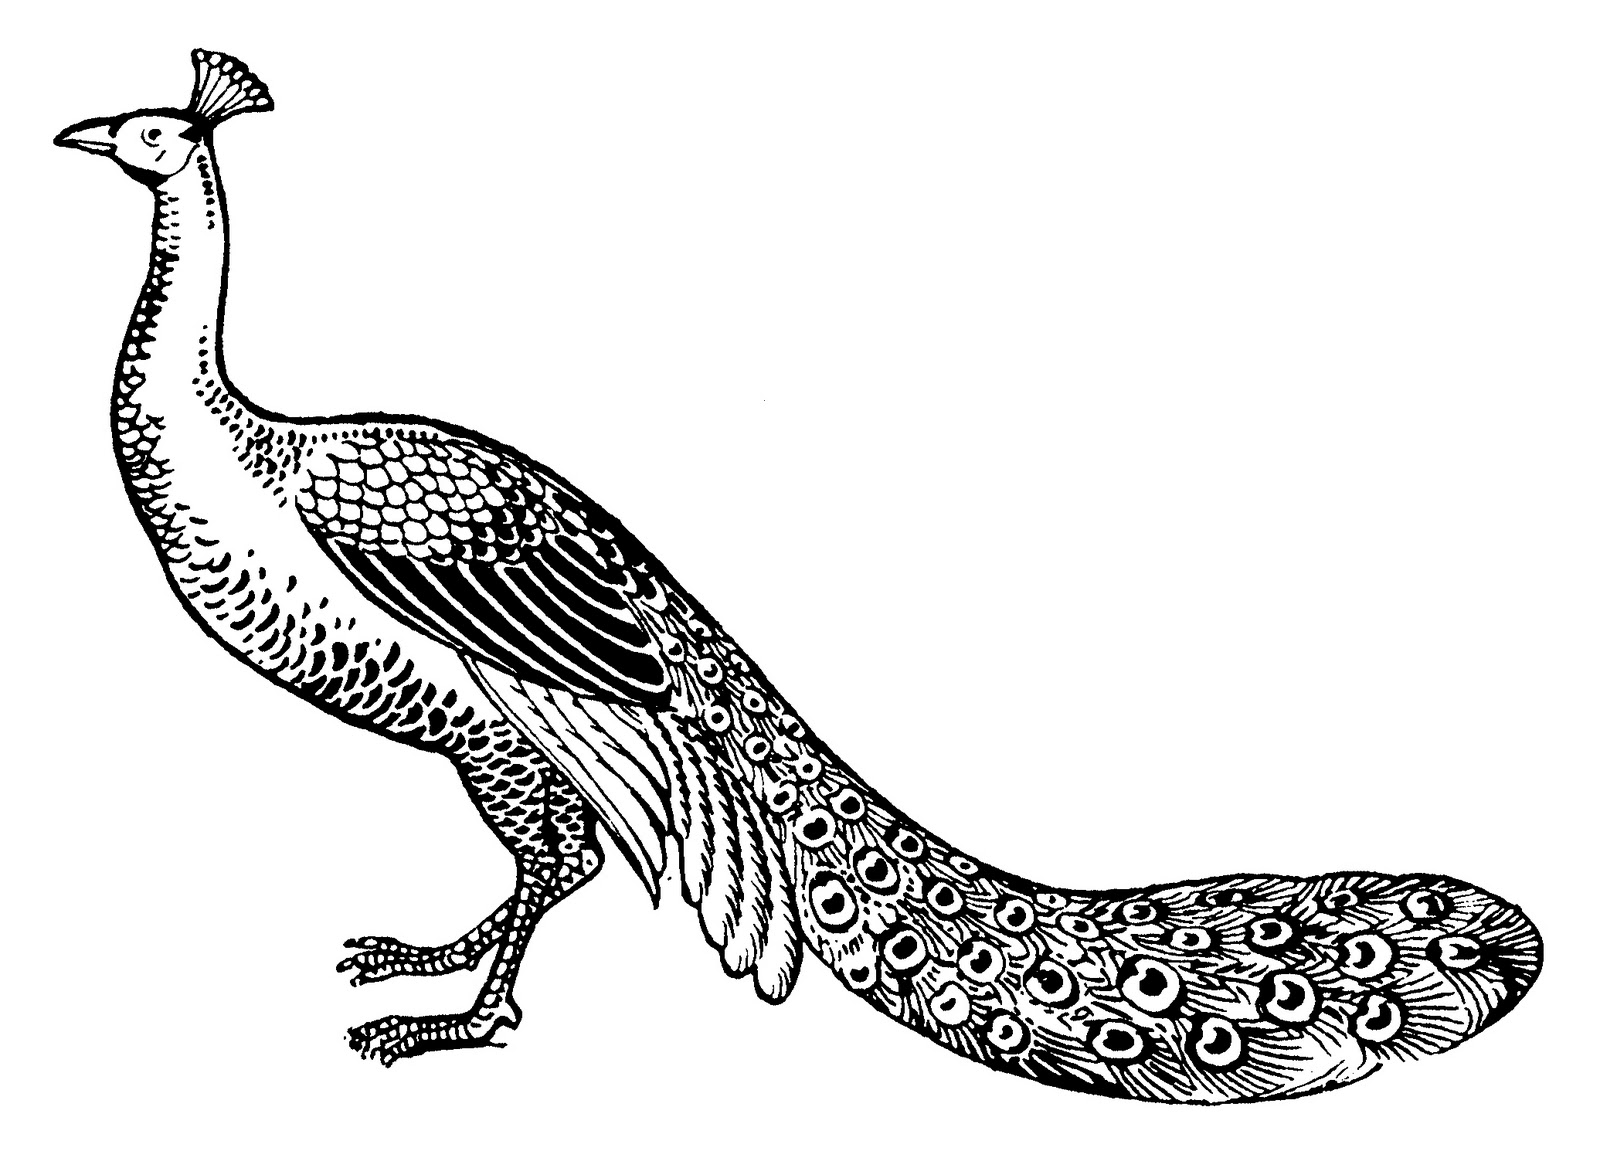 Line Drawing Of Peacock : Line drawing peacock images clipart best